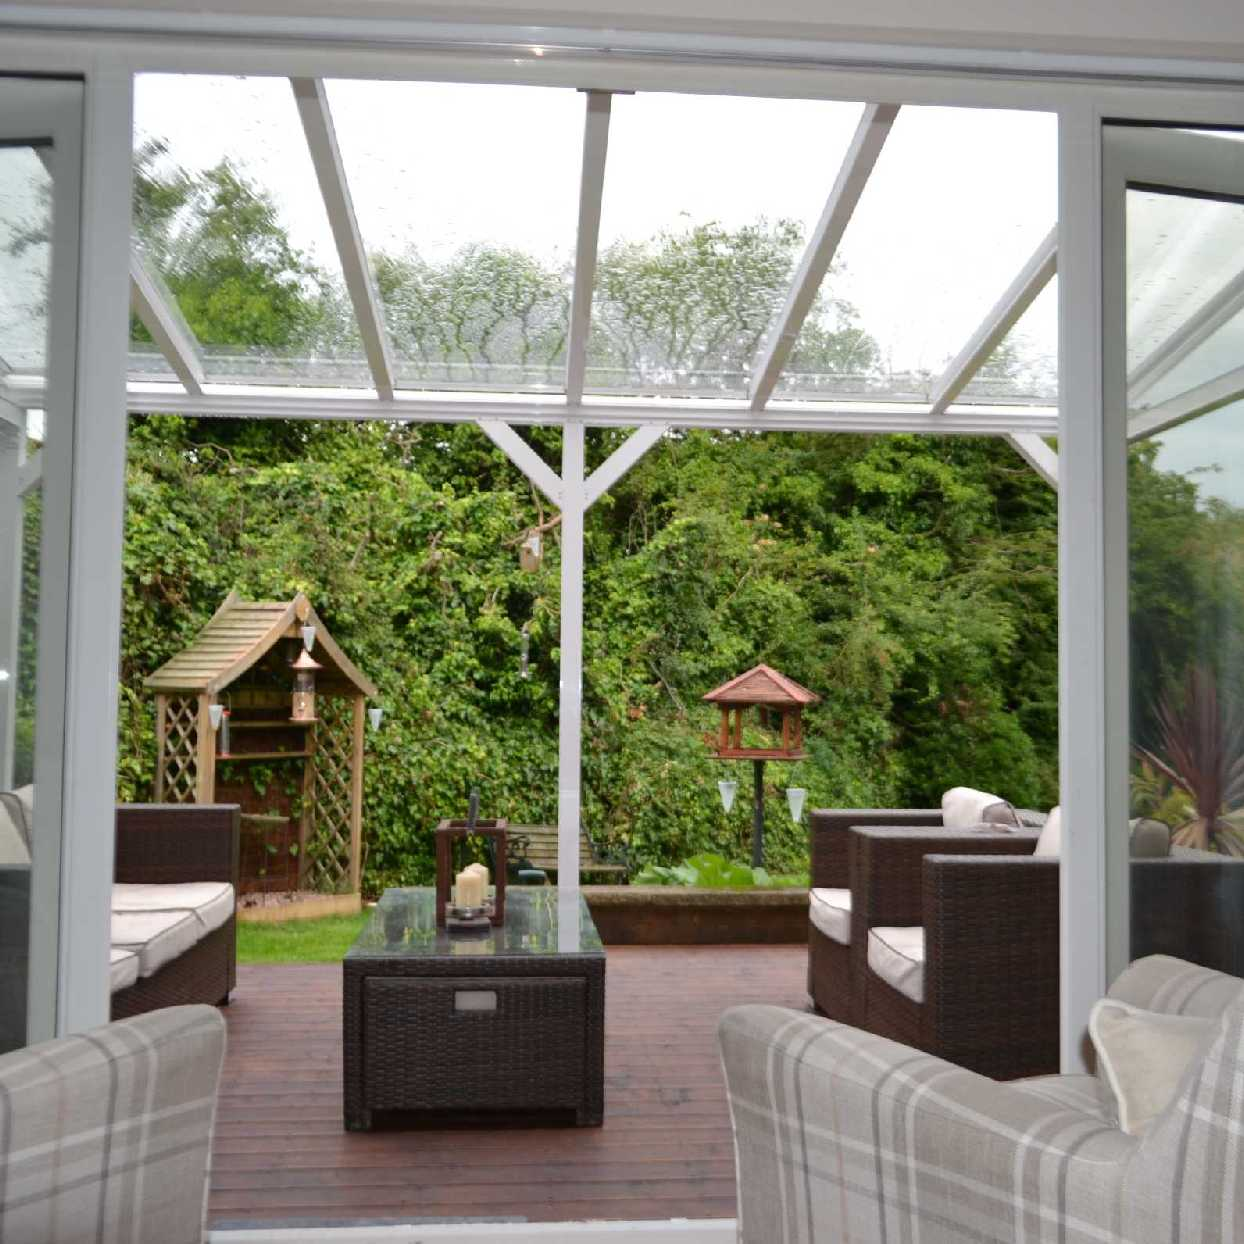 Great selection of Omega Smart White Lean-To Canopy UNGLAZED for 6mm Glazing - 7.0m (W) x 2.0m (P), (4) Supporting Posts